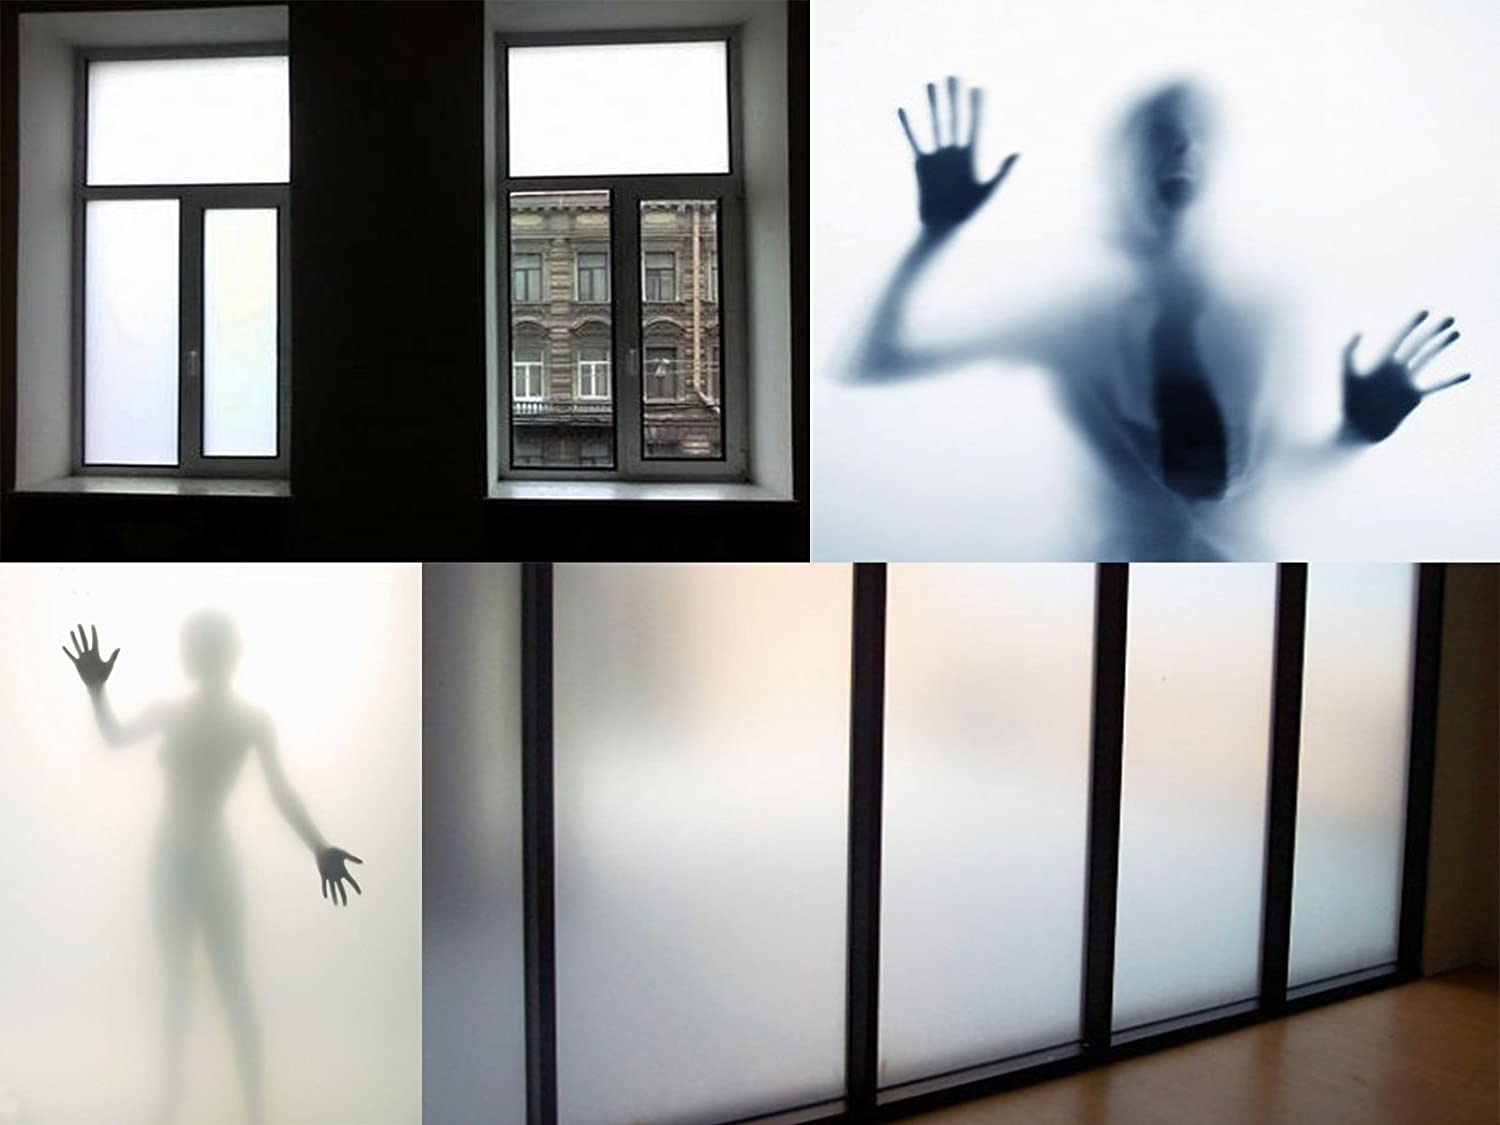 100 cm x 120 cm frosted glass foil, frosted window foil Metzler-Folien